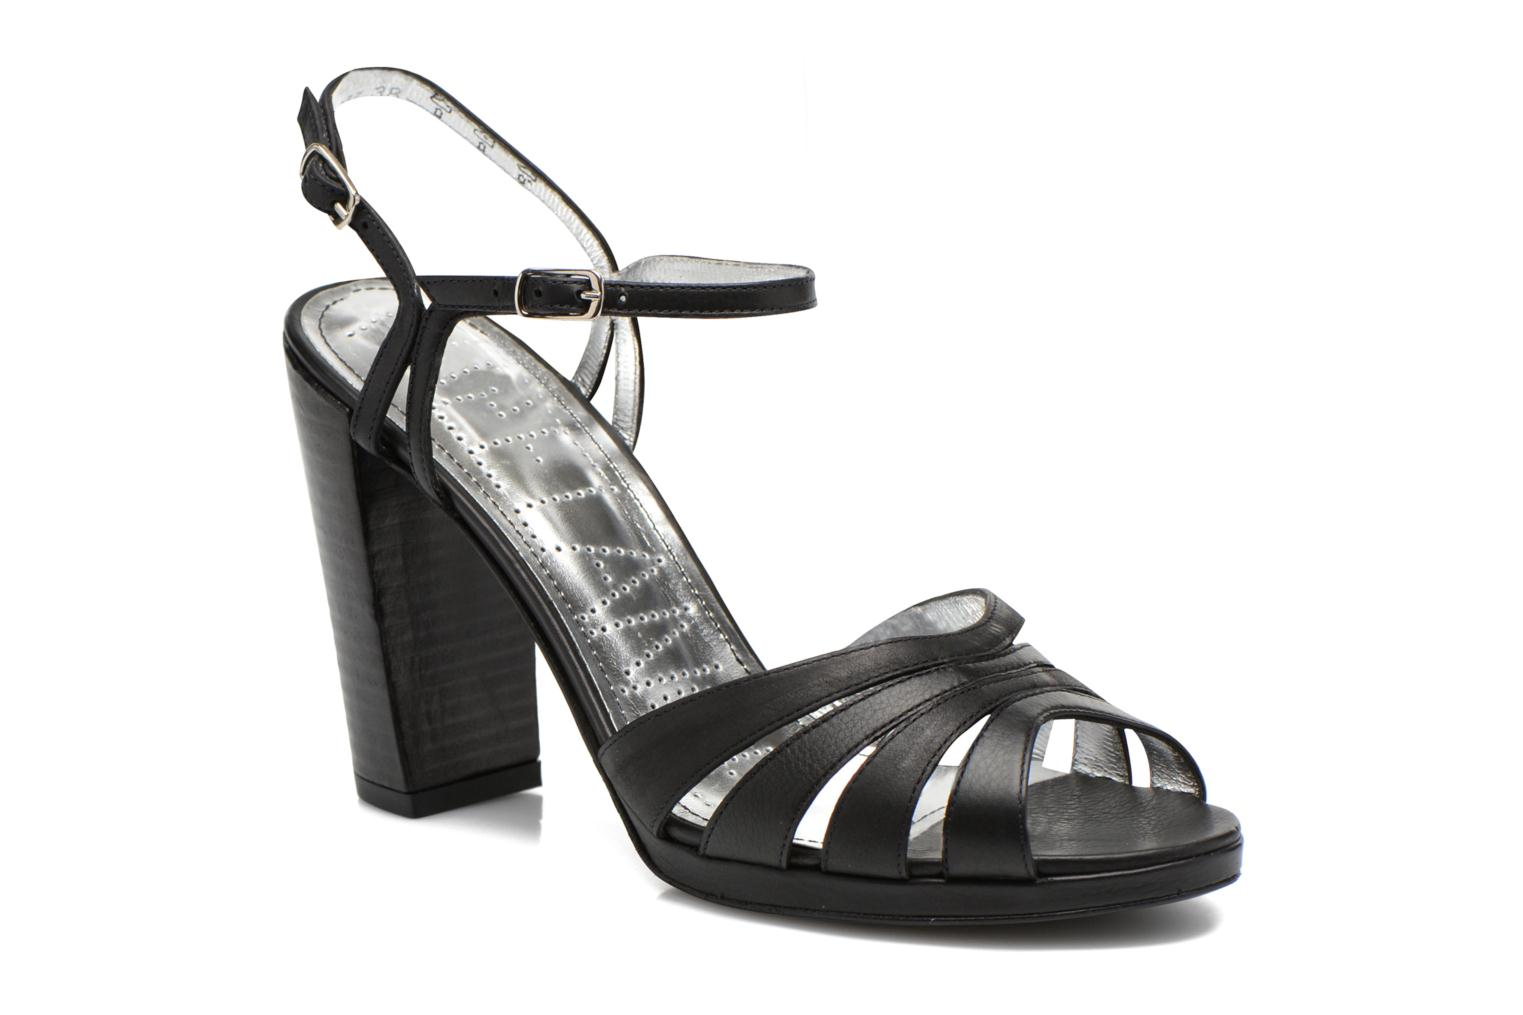 Kerry 7 Sandal 2 Buckles Boston Kentucky Noir